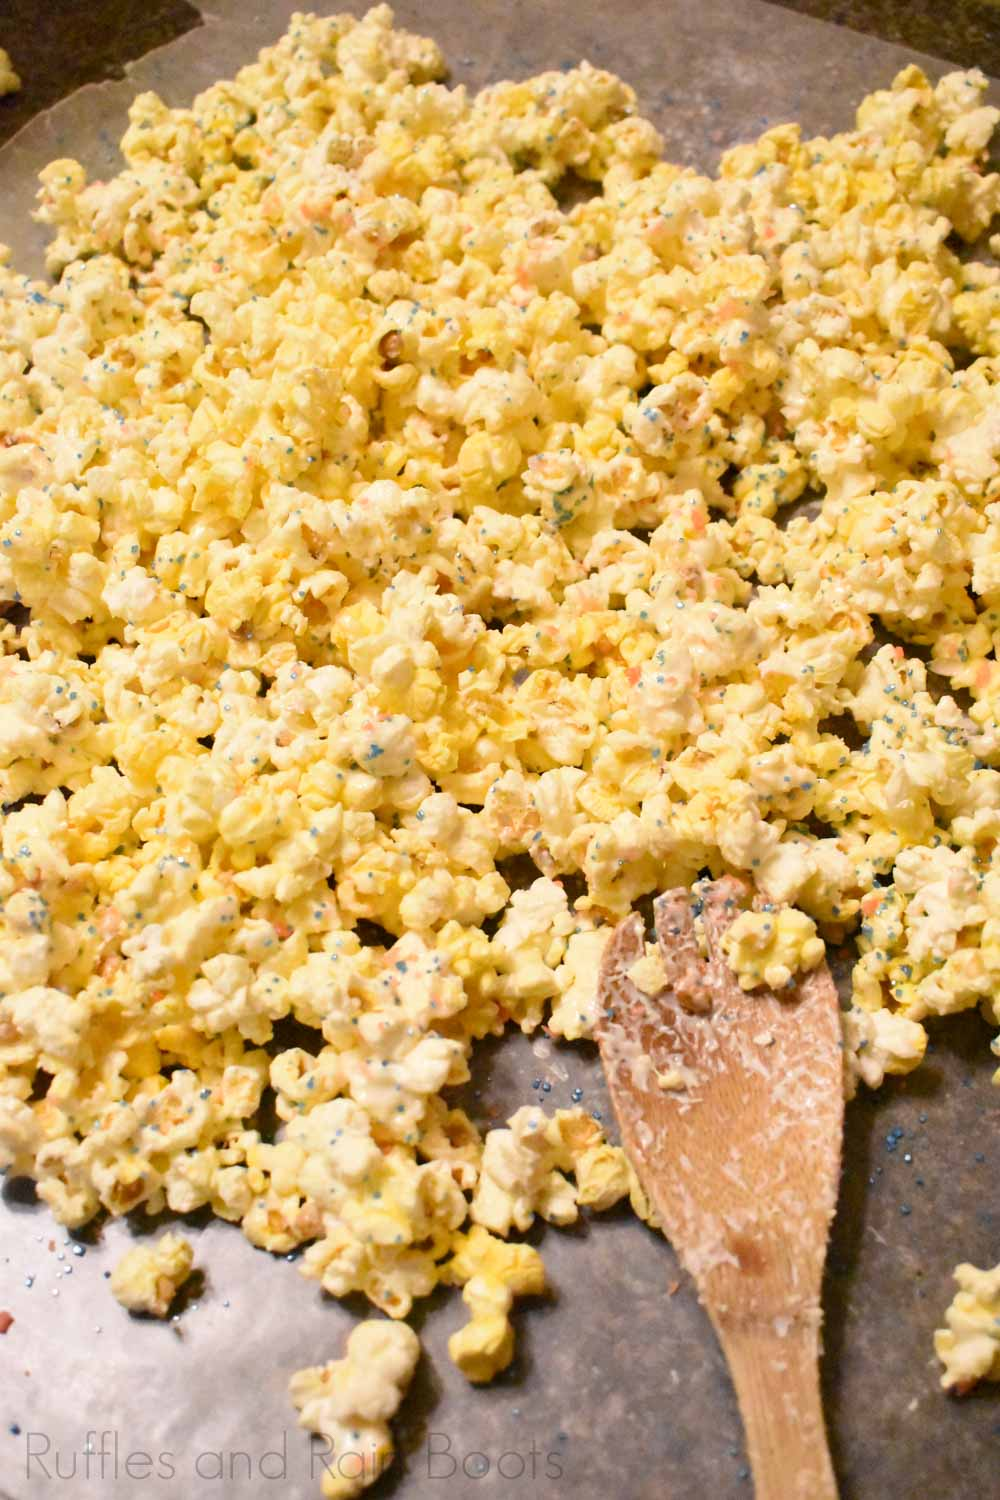 spread candy popcorn over wax paper